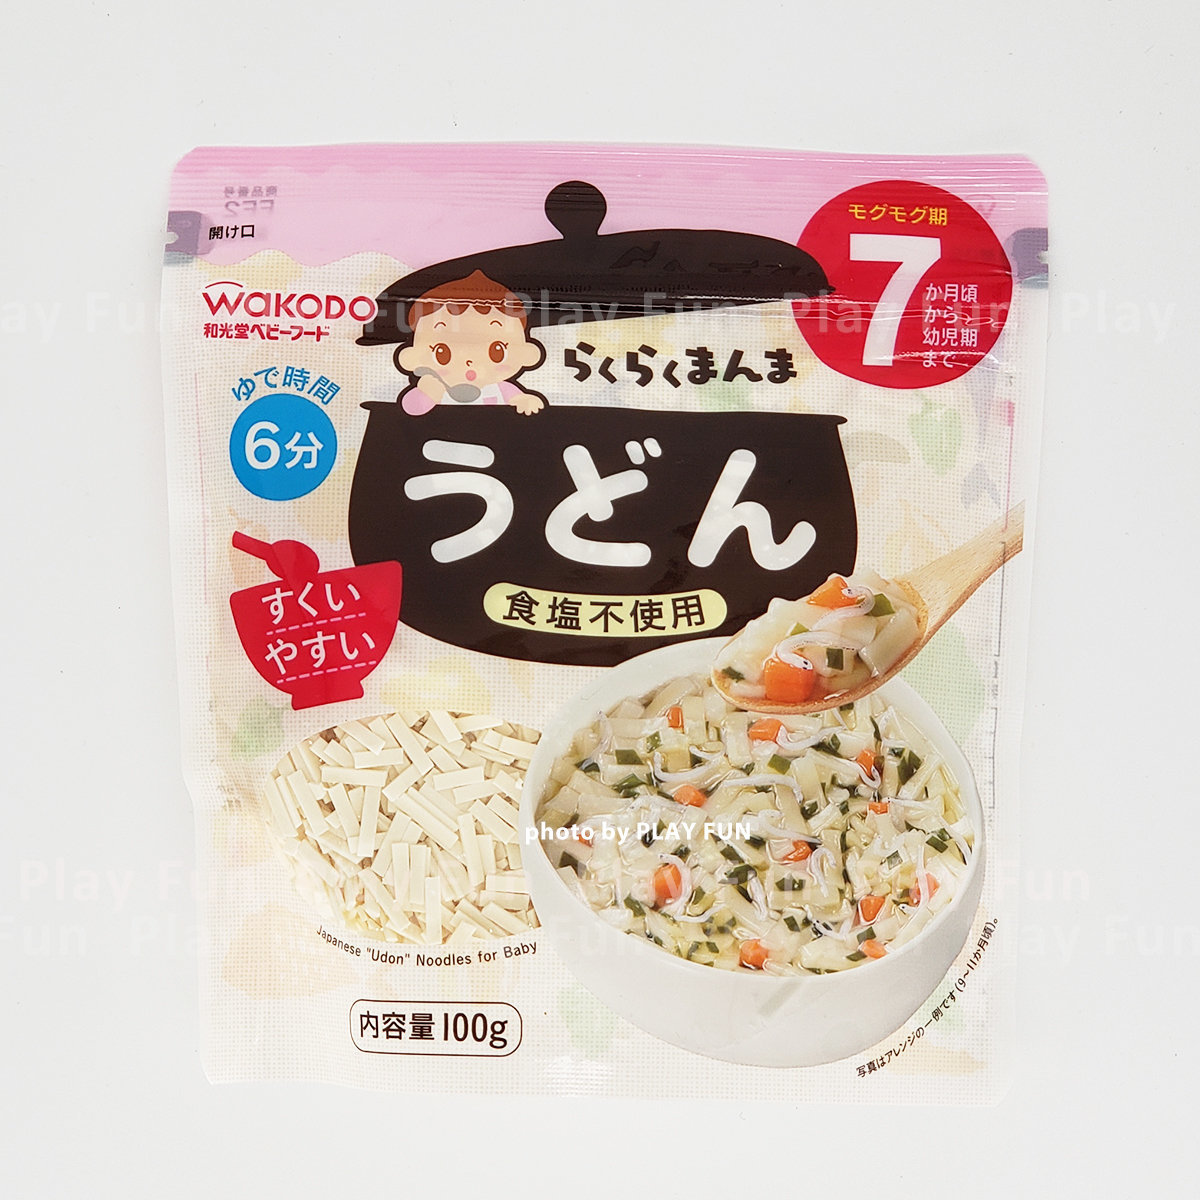 Japanese Udon Noodles 100g [For 7months old baby]  (4987244185242)